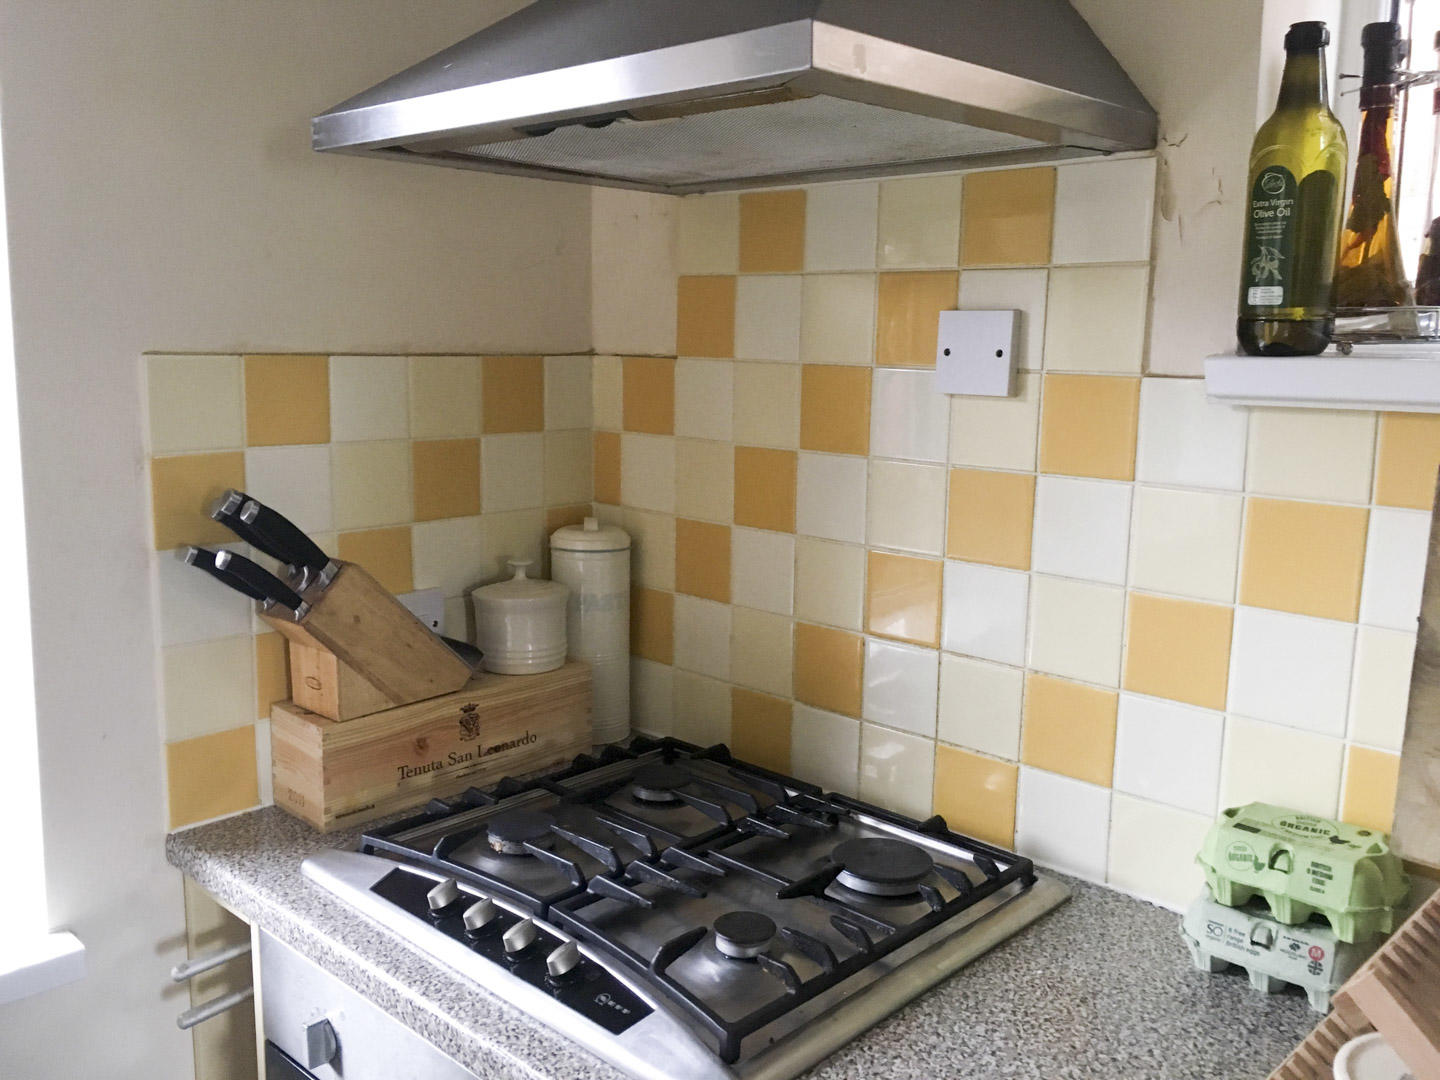 We Decided For Giving The Kitchen A More Modern Feel Using Fresh Coat Of Paint Because Neither Us Can Stand Yellow First Task Painting Tiles